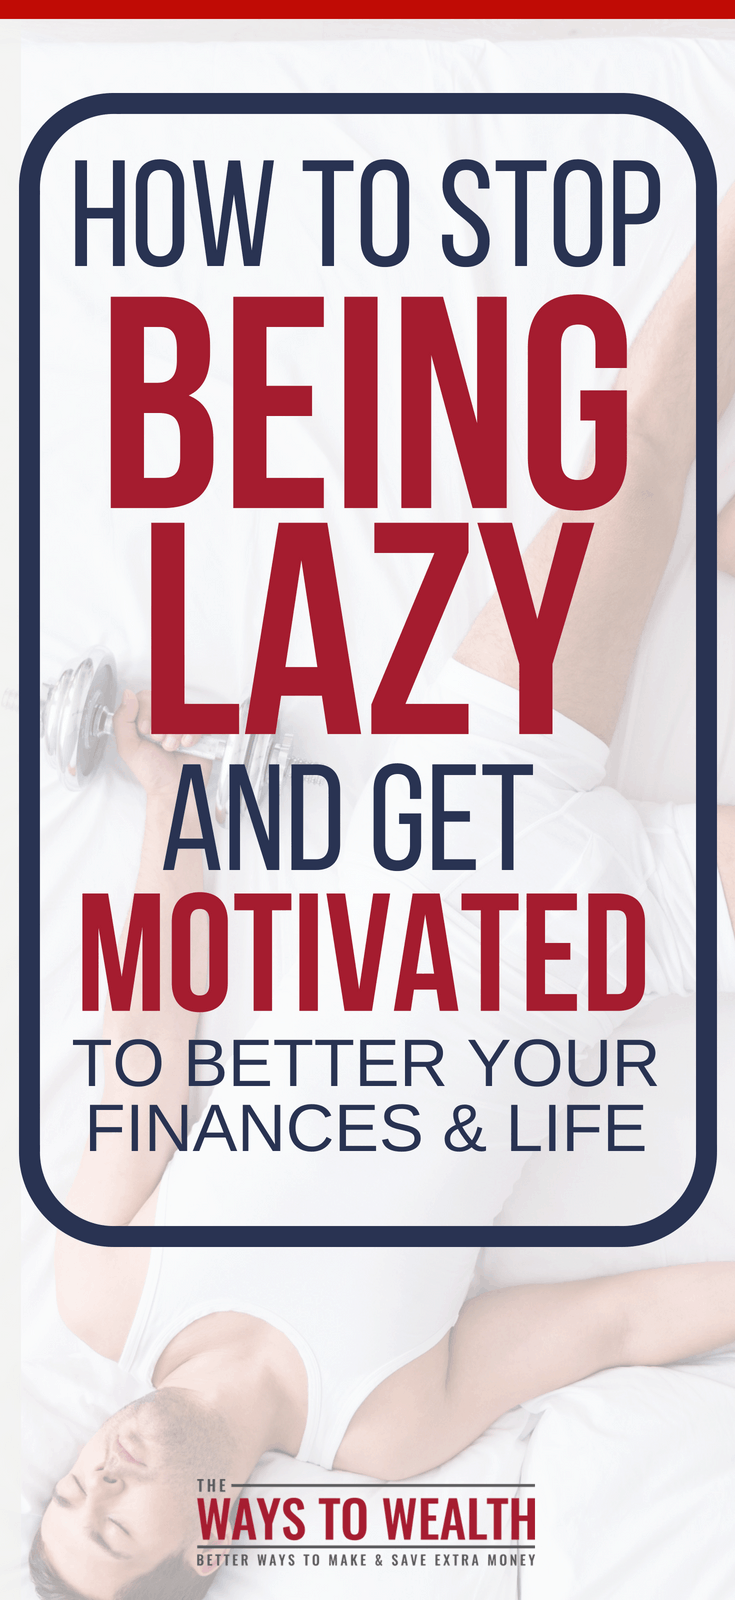 10 Tiny Habits for Beating Procrastination (To Better Your Finances & Life)  how to stop being lazy | get motivated in life | beat procrastination tips  #thewaystowealth #lifehackx #productivity